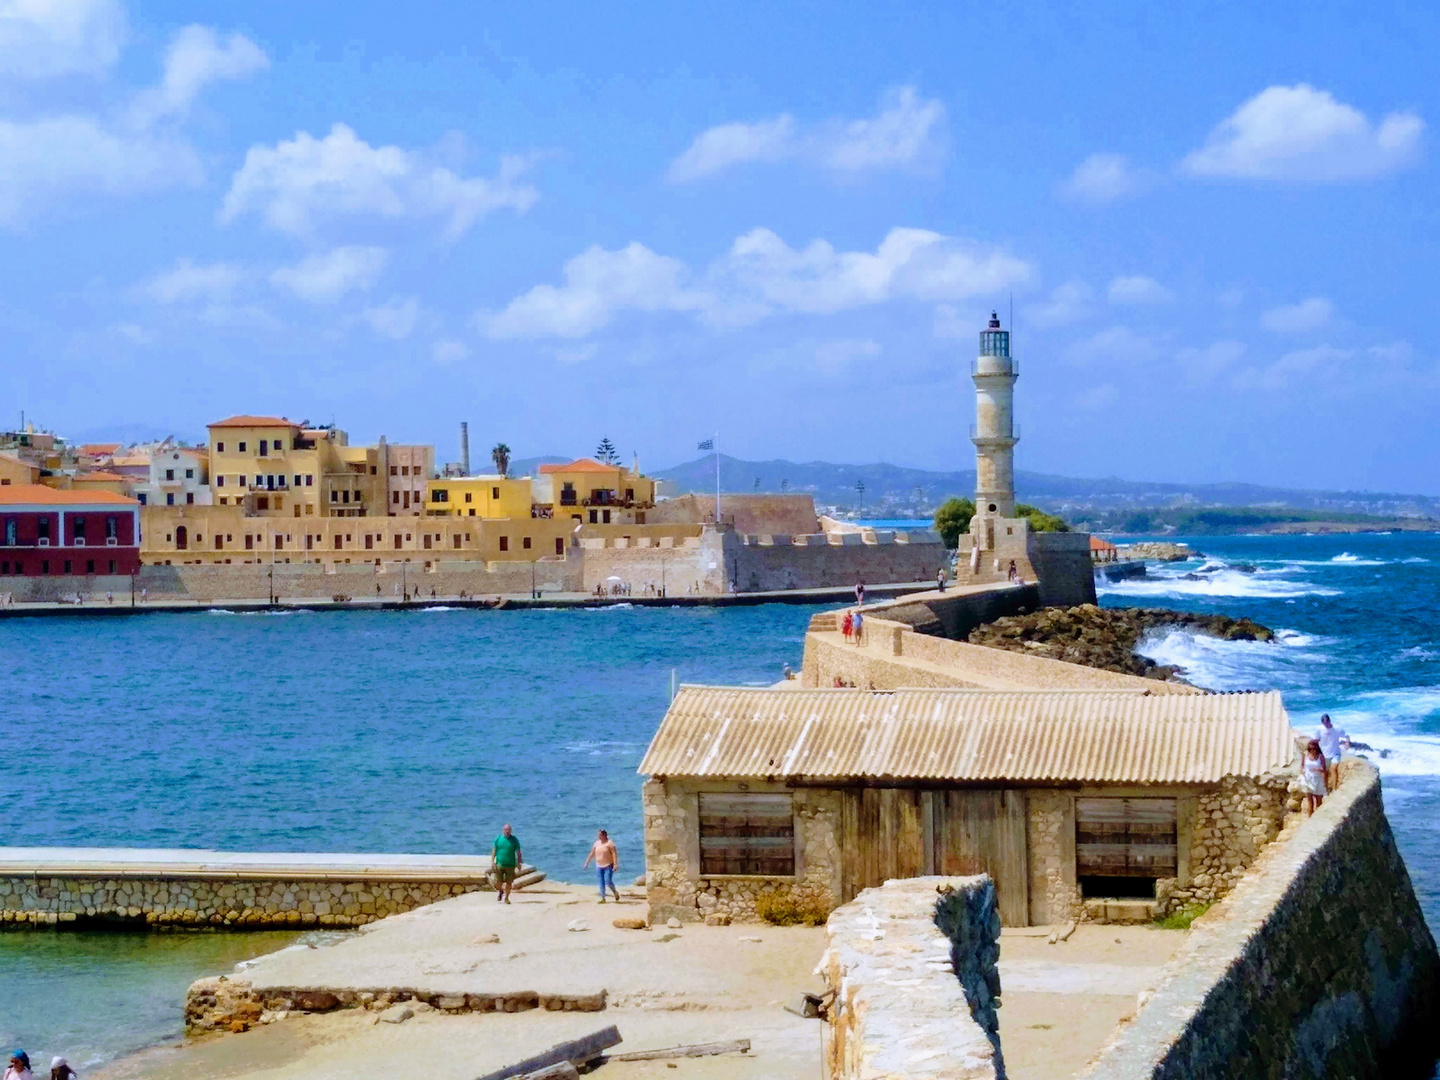 Port of Chania with light house